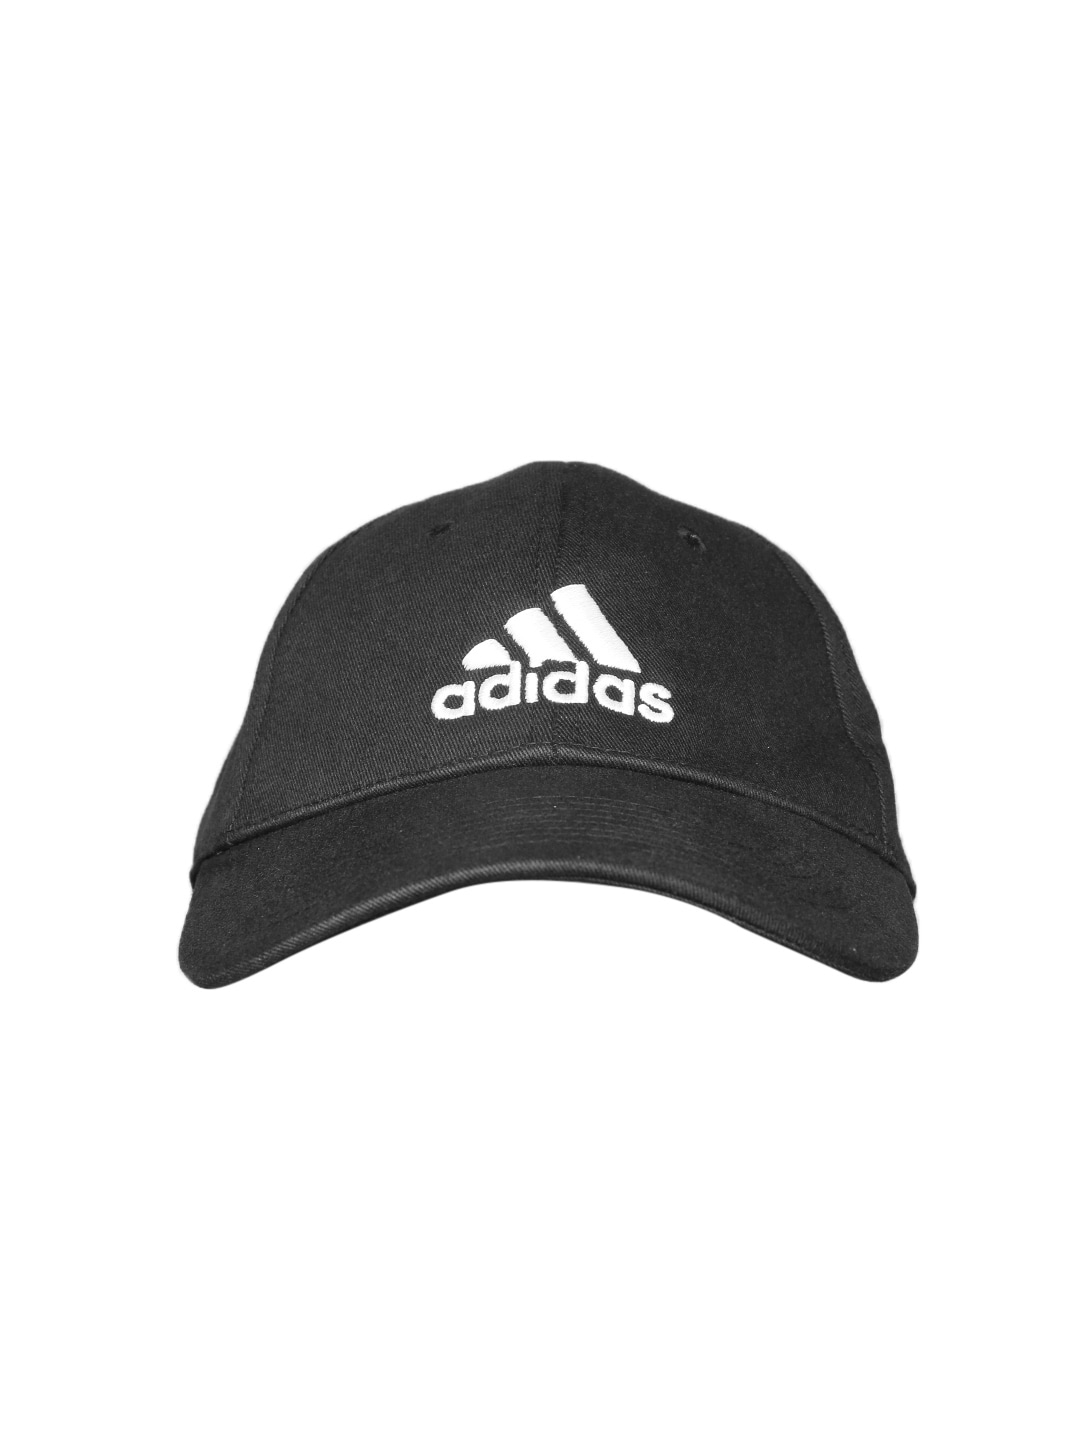 Adidas Black Caps - Buy Adidas Black Caps online in India 7eed3909193d